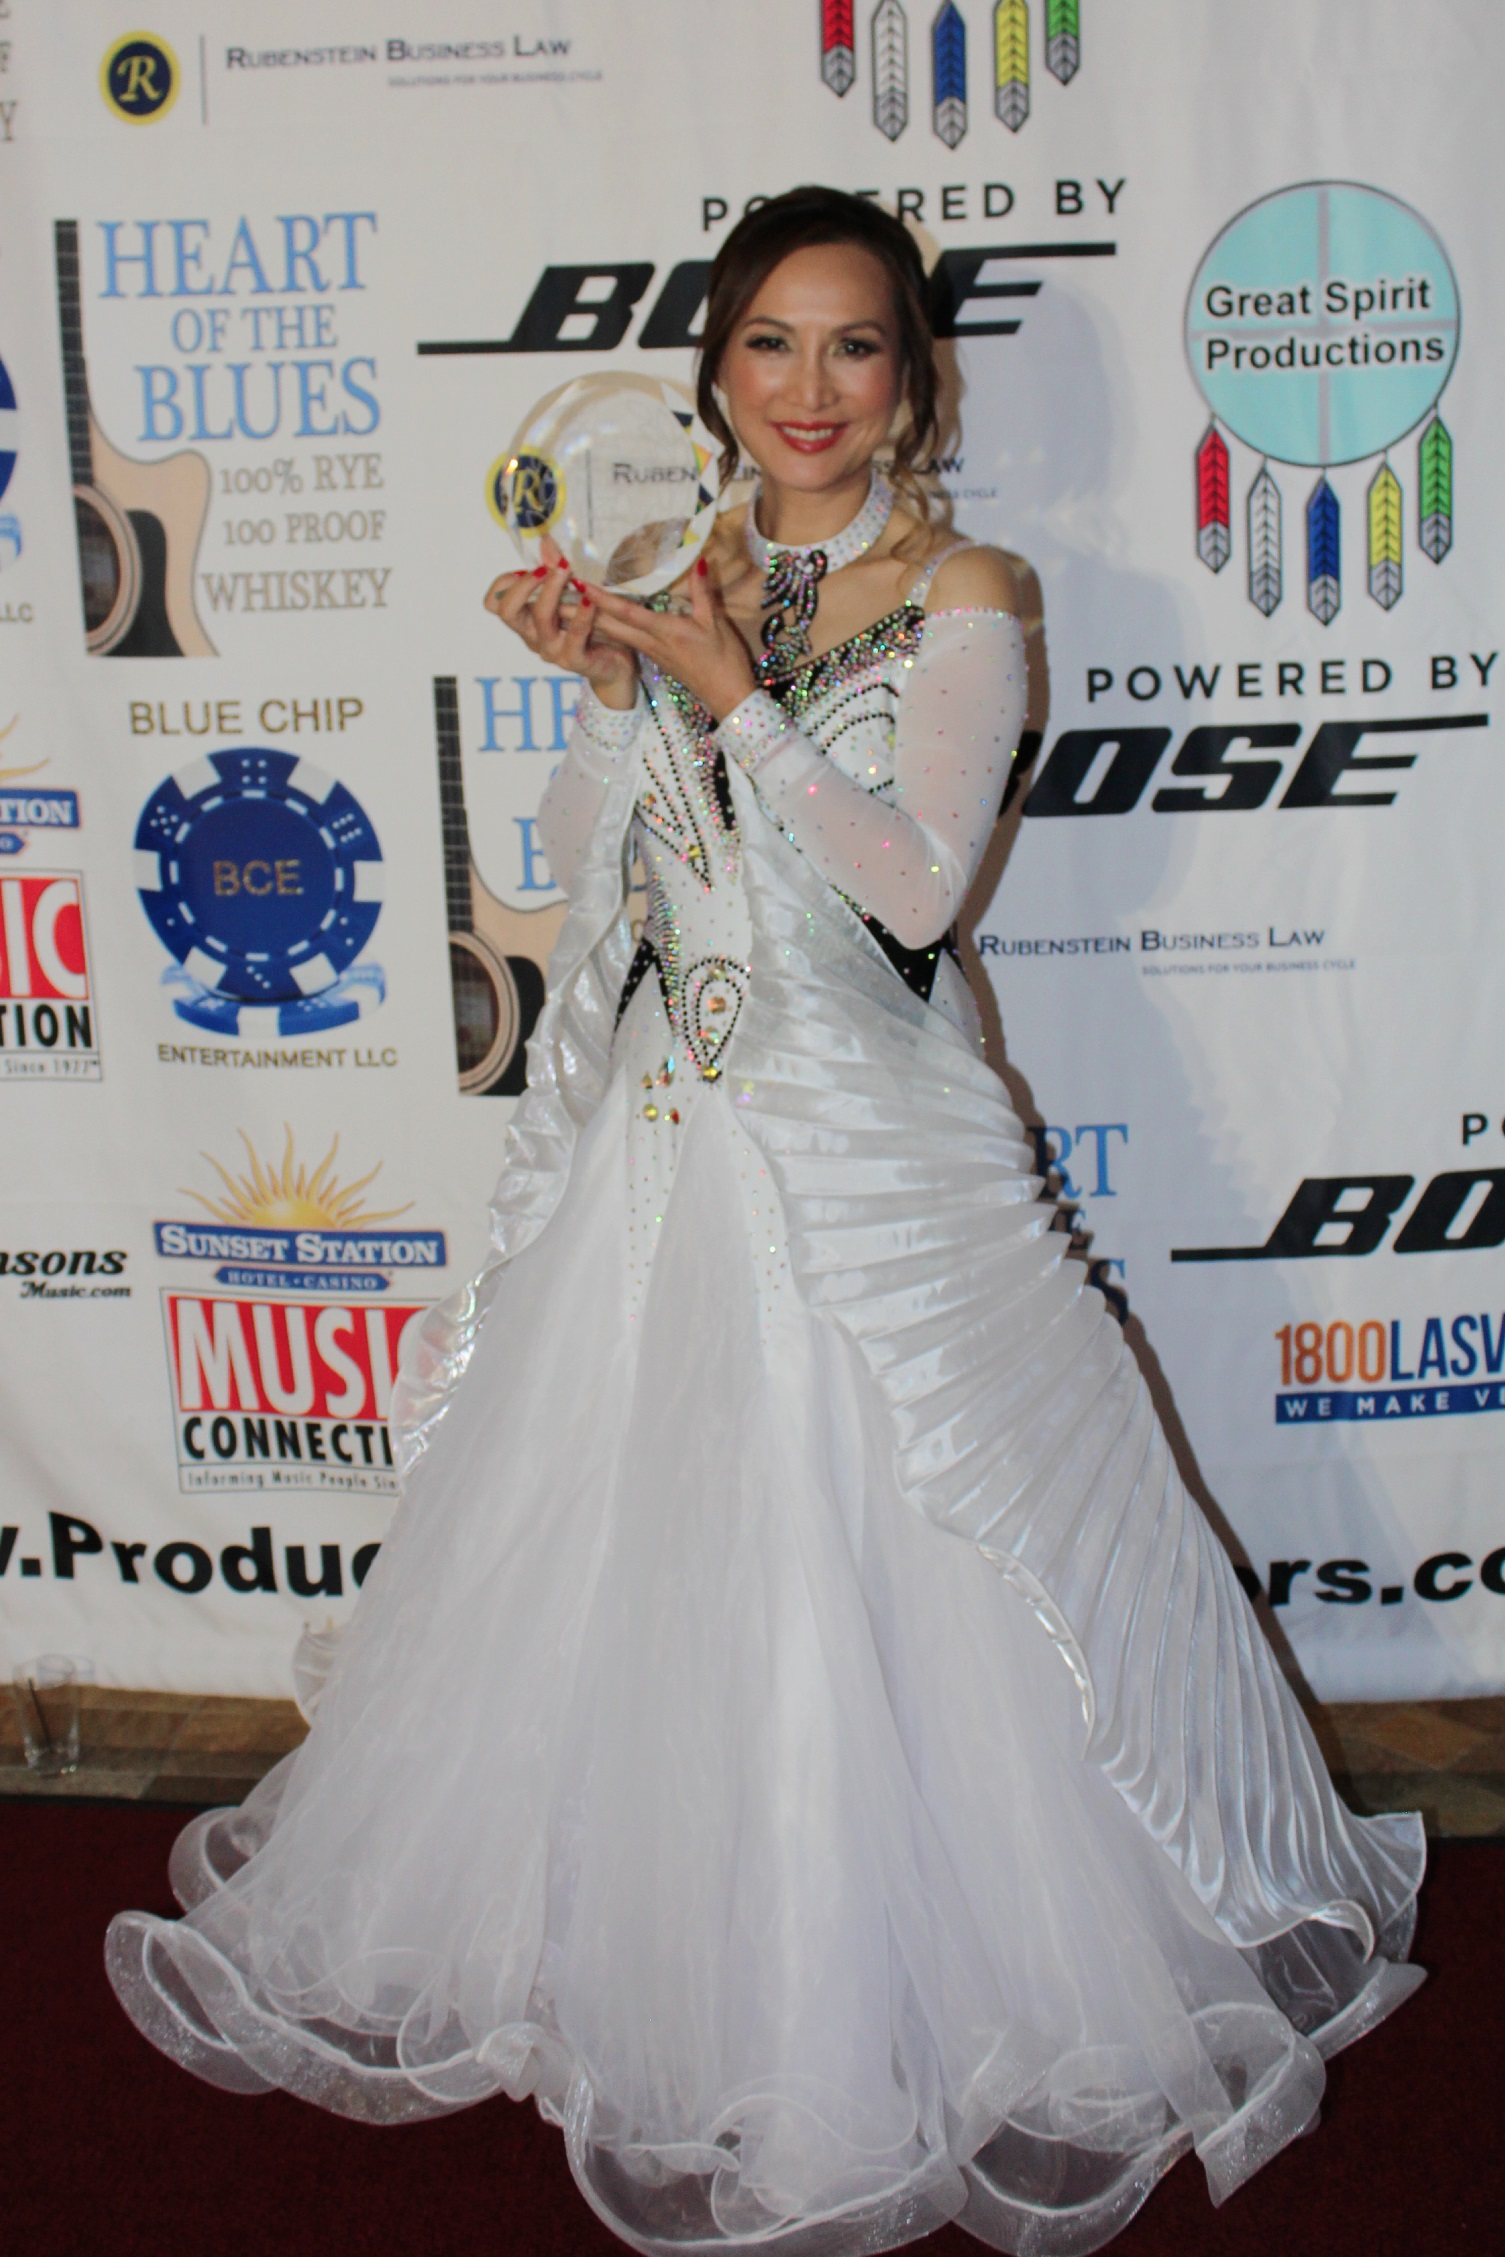 Lily Lisa, Philanthropist Receives The Angel on Earth Award Presented in Las Vegas